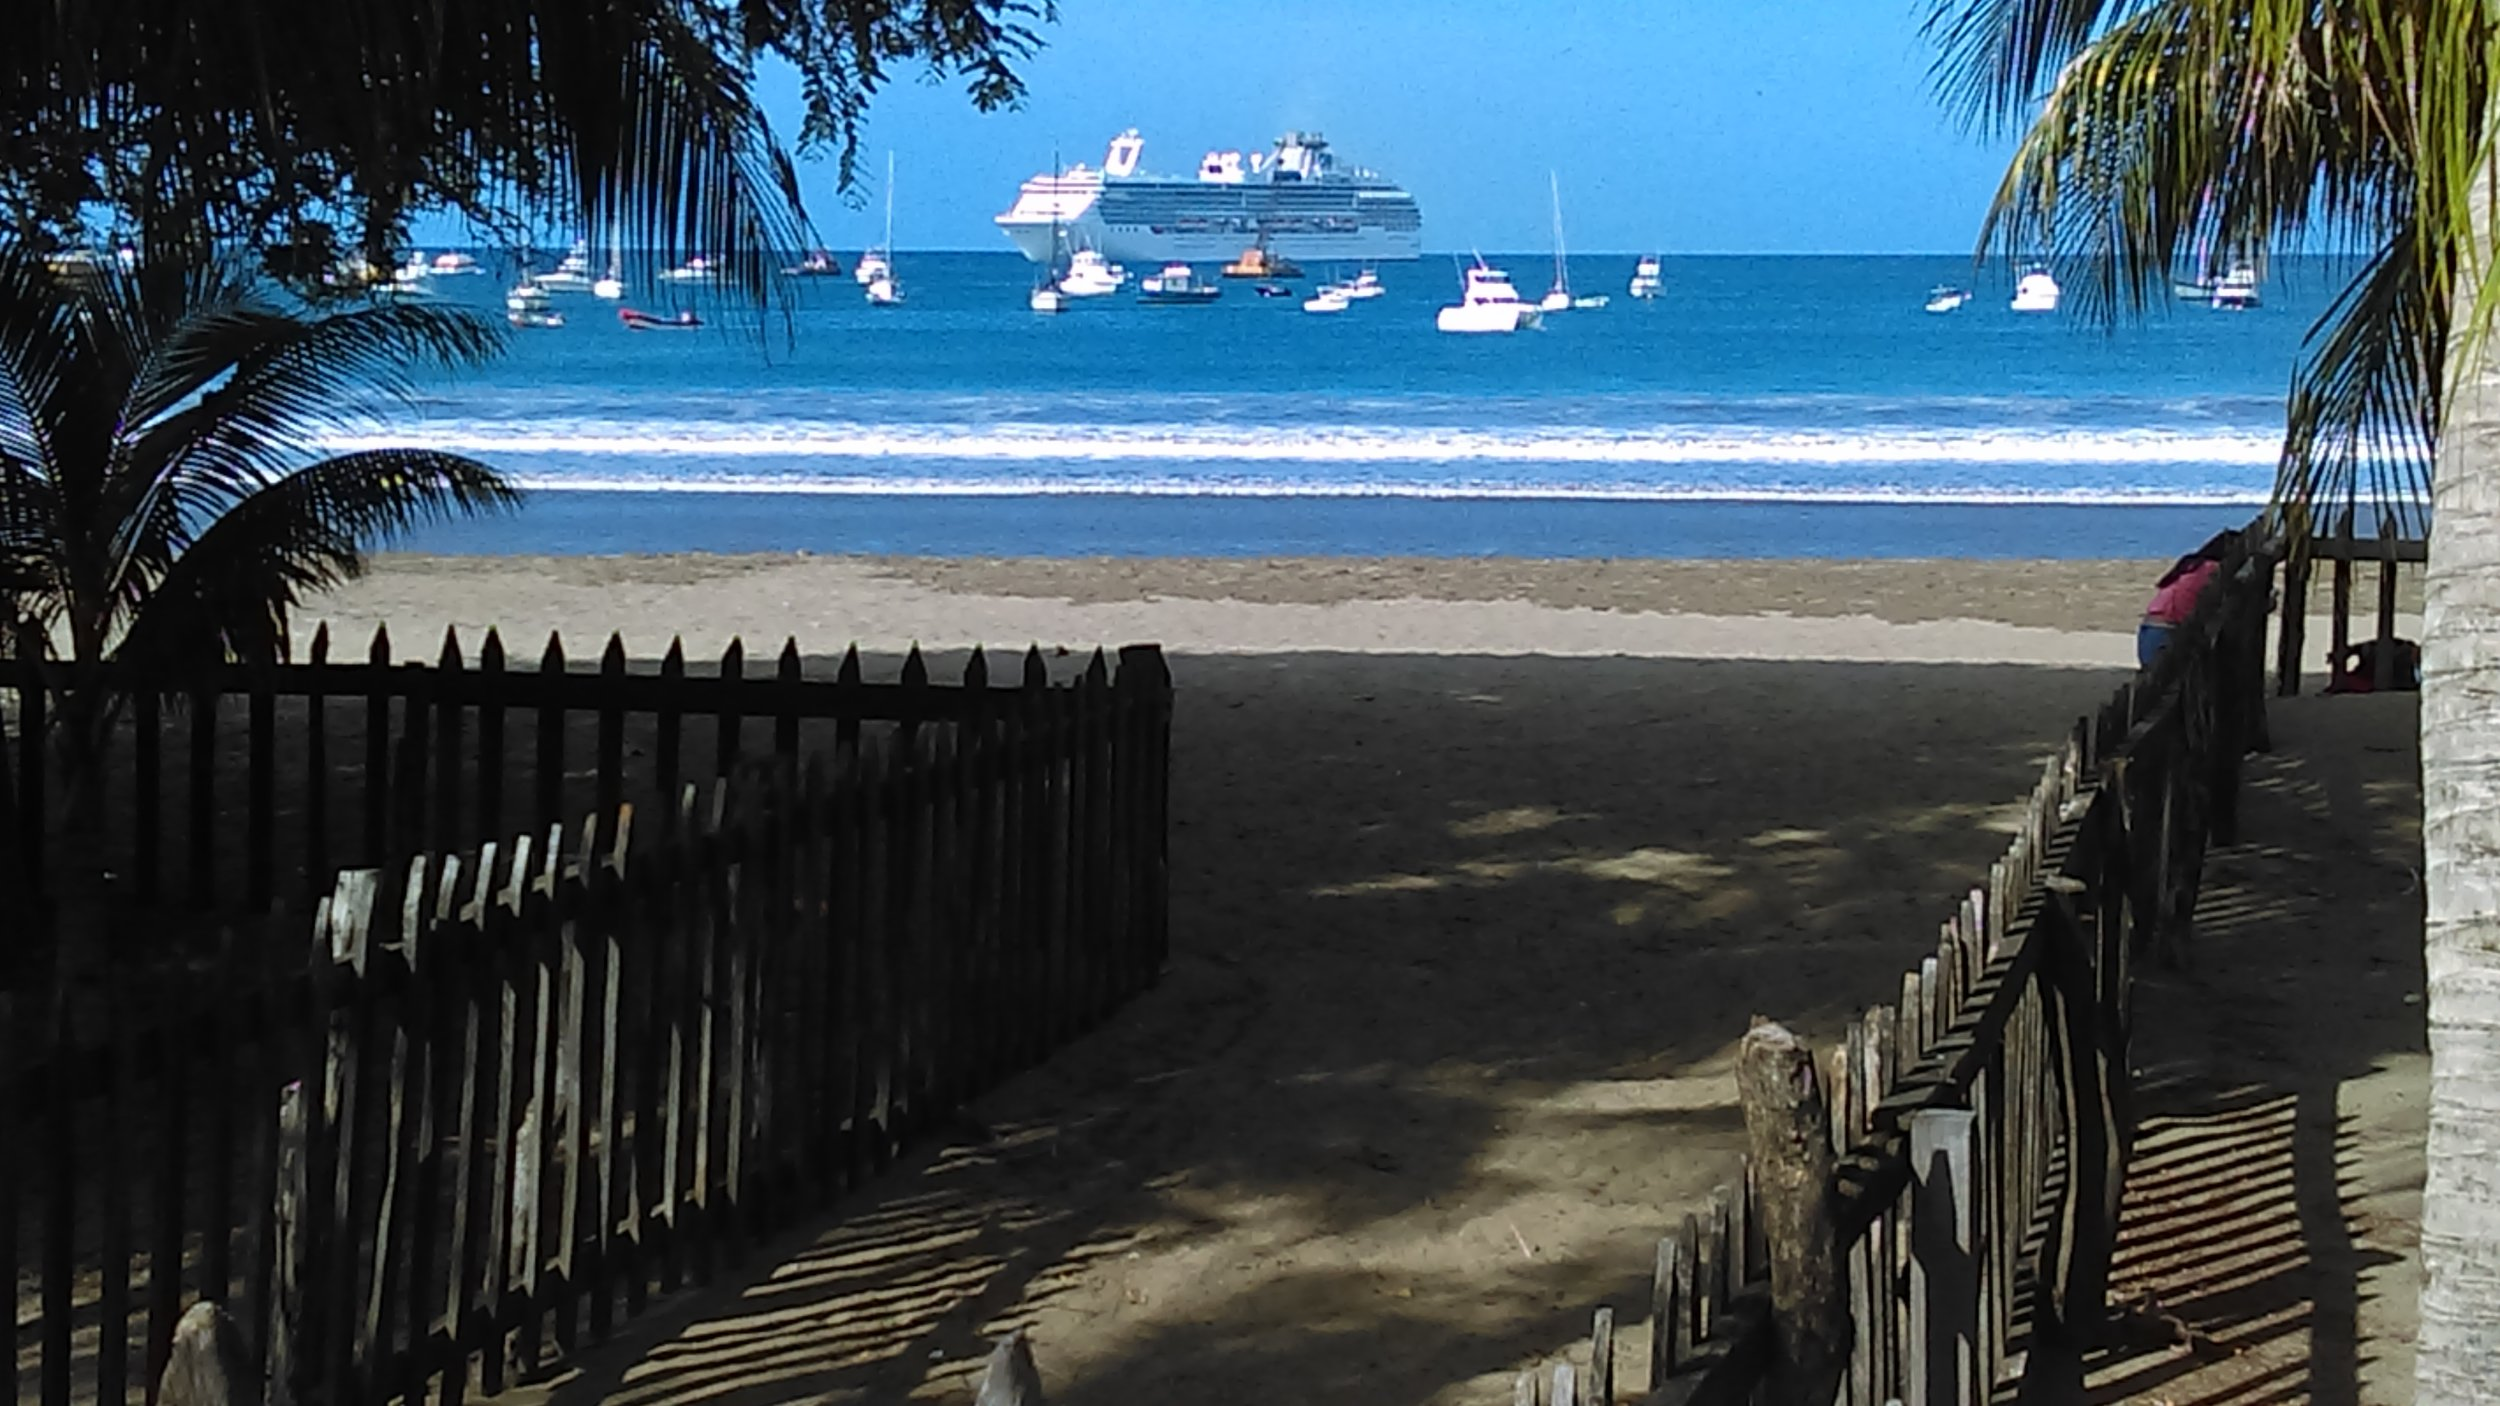 A last-minute, long-awaited, first trip to Central America's Nicaragua. The miles I had been saving up for the past 2 years finally paid off!